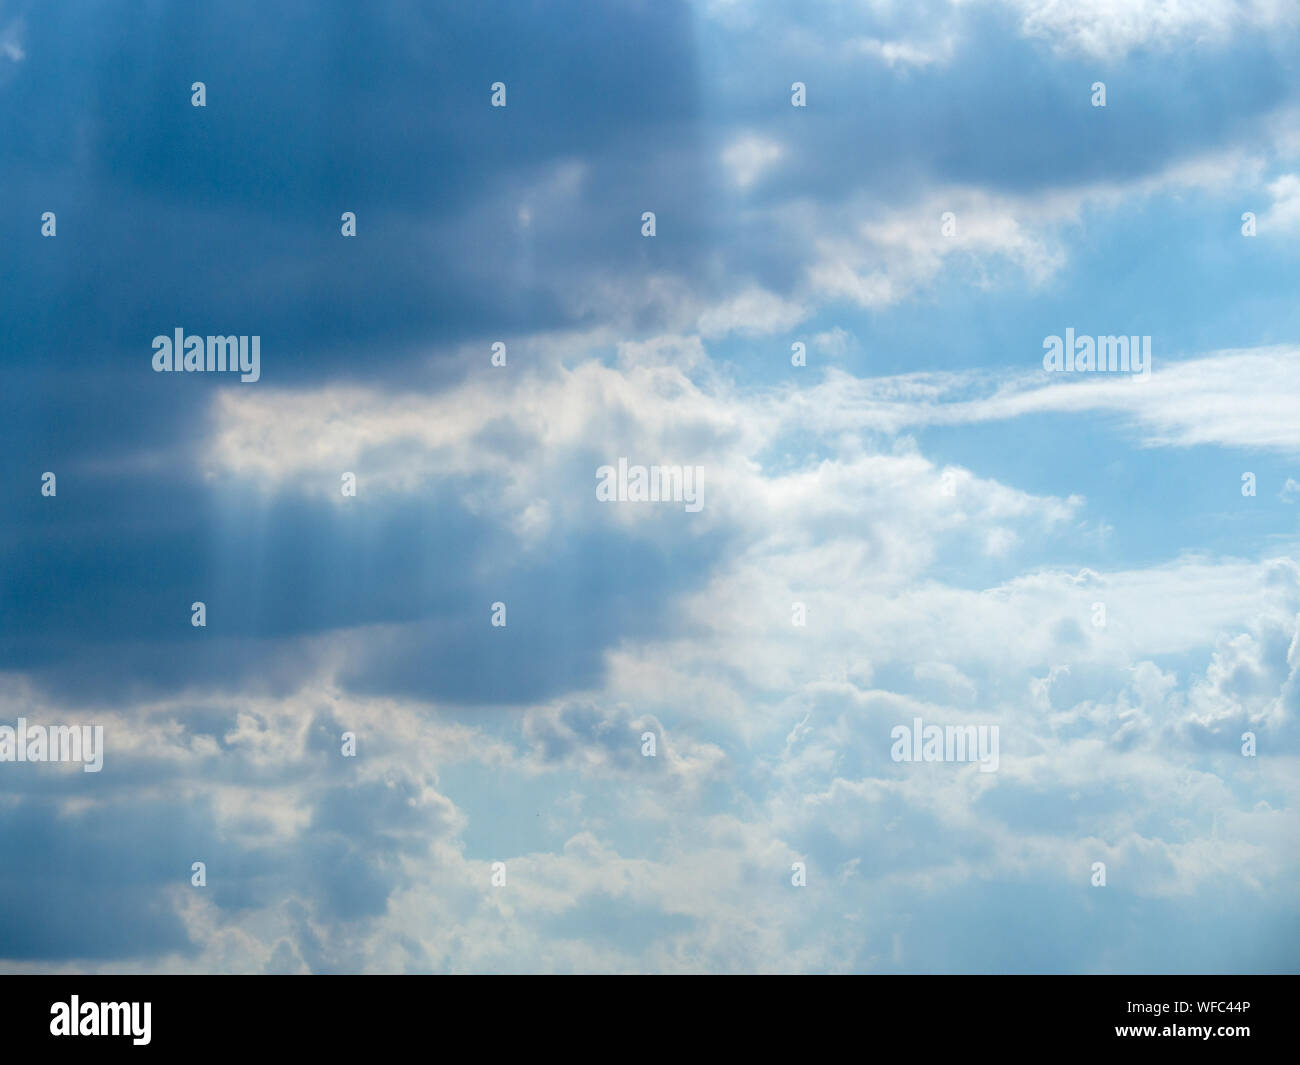 The sky at sunset, Sunny background, blue sky with white clouds, Natural landscape Stock Photo